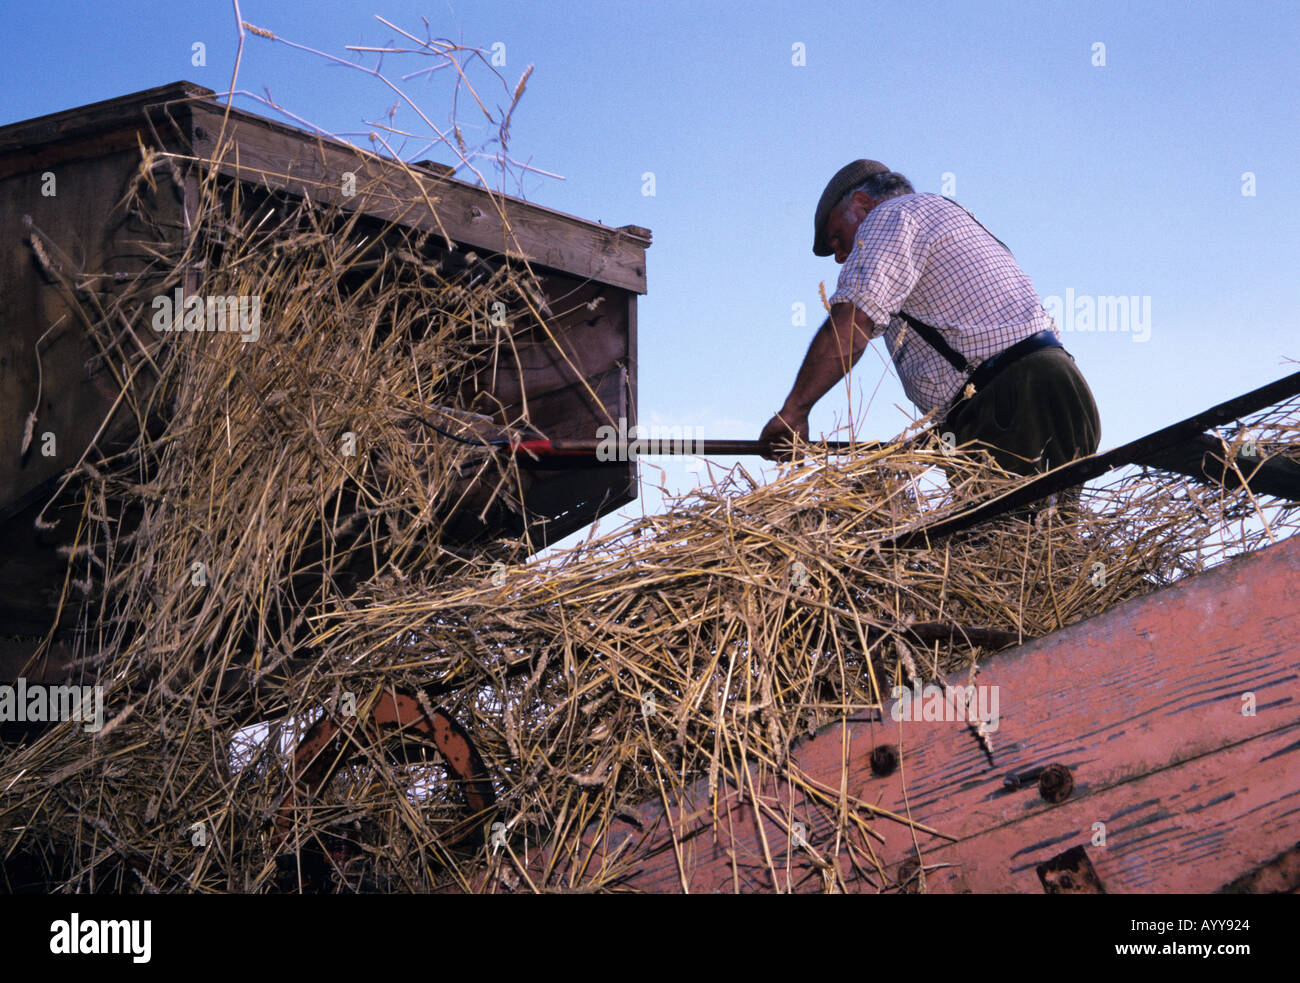 Traditional threshing long corn straw for thatching on a farm at traditional threshing long corn straw for thatching on a farm at bury st edmunds sciox Choice Image